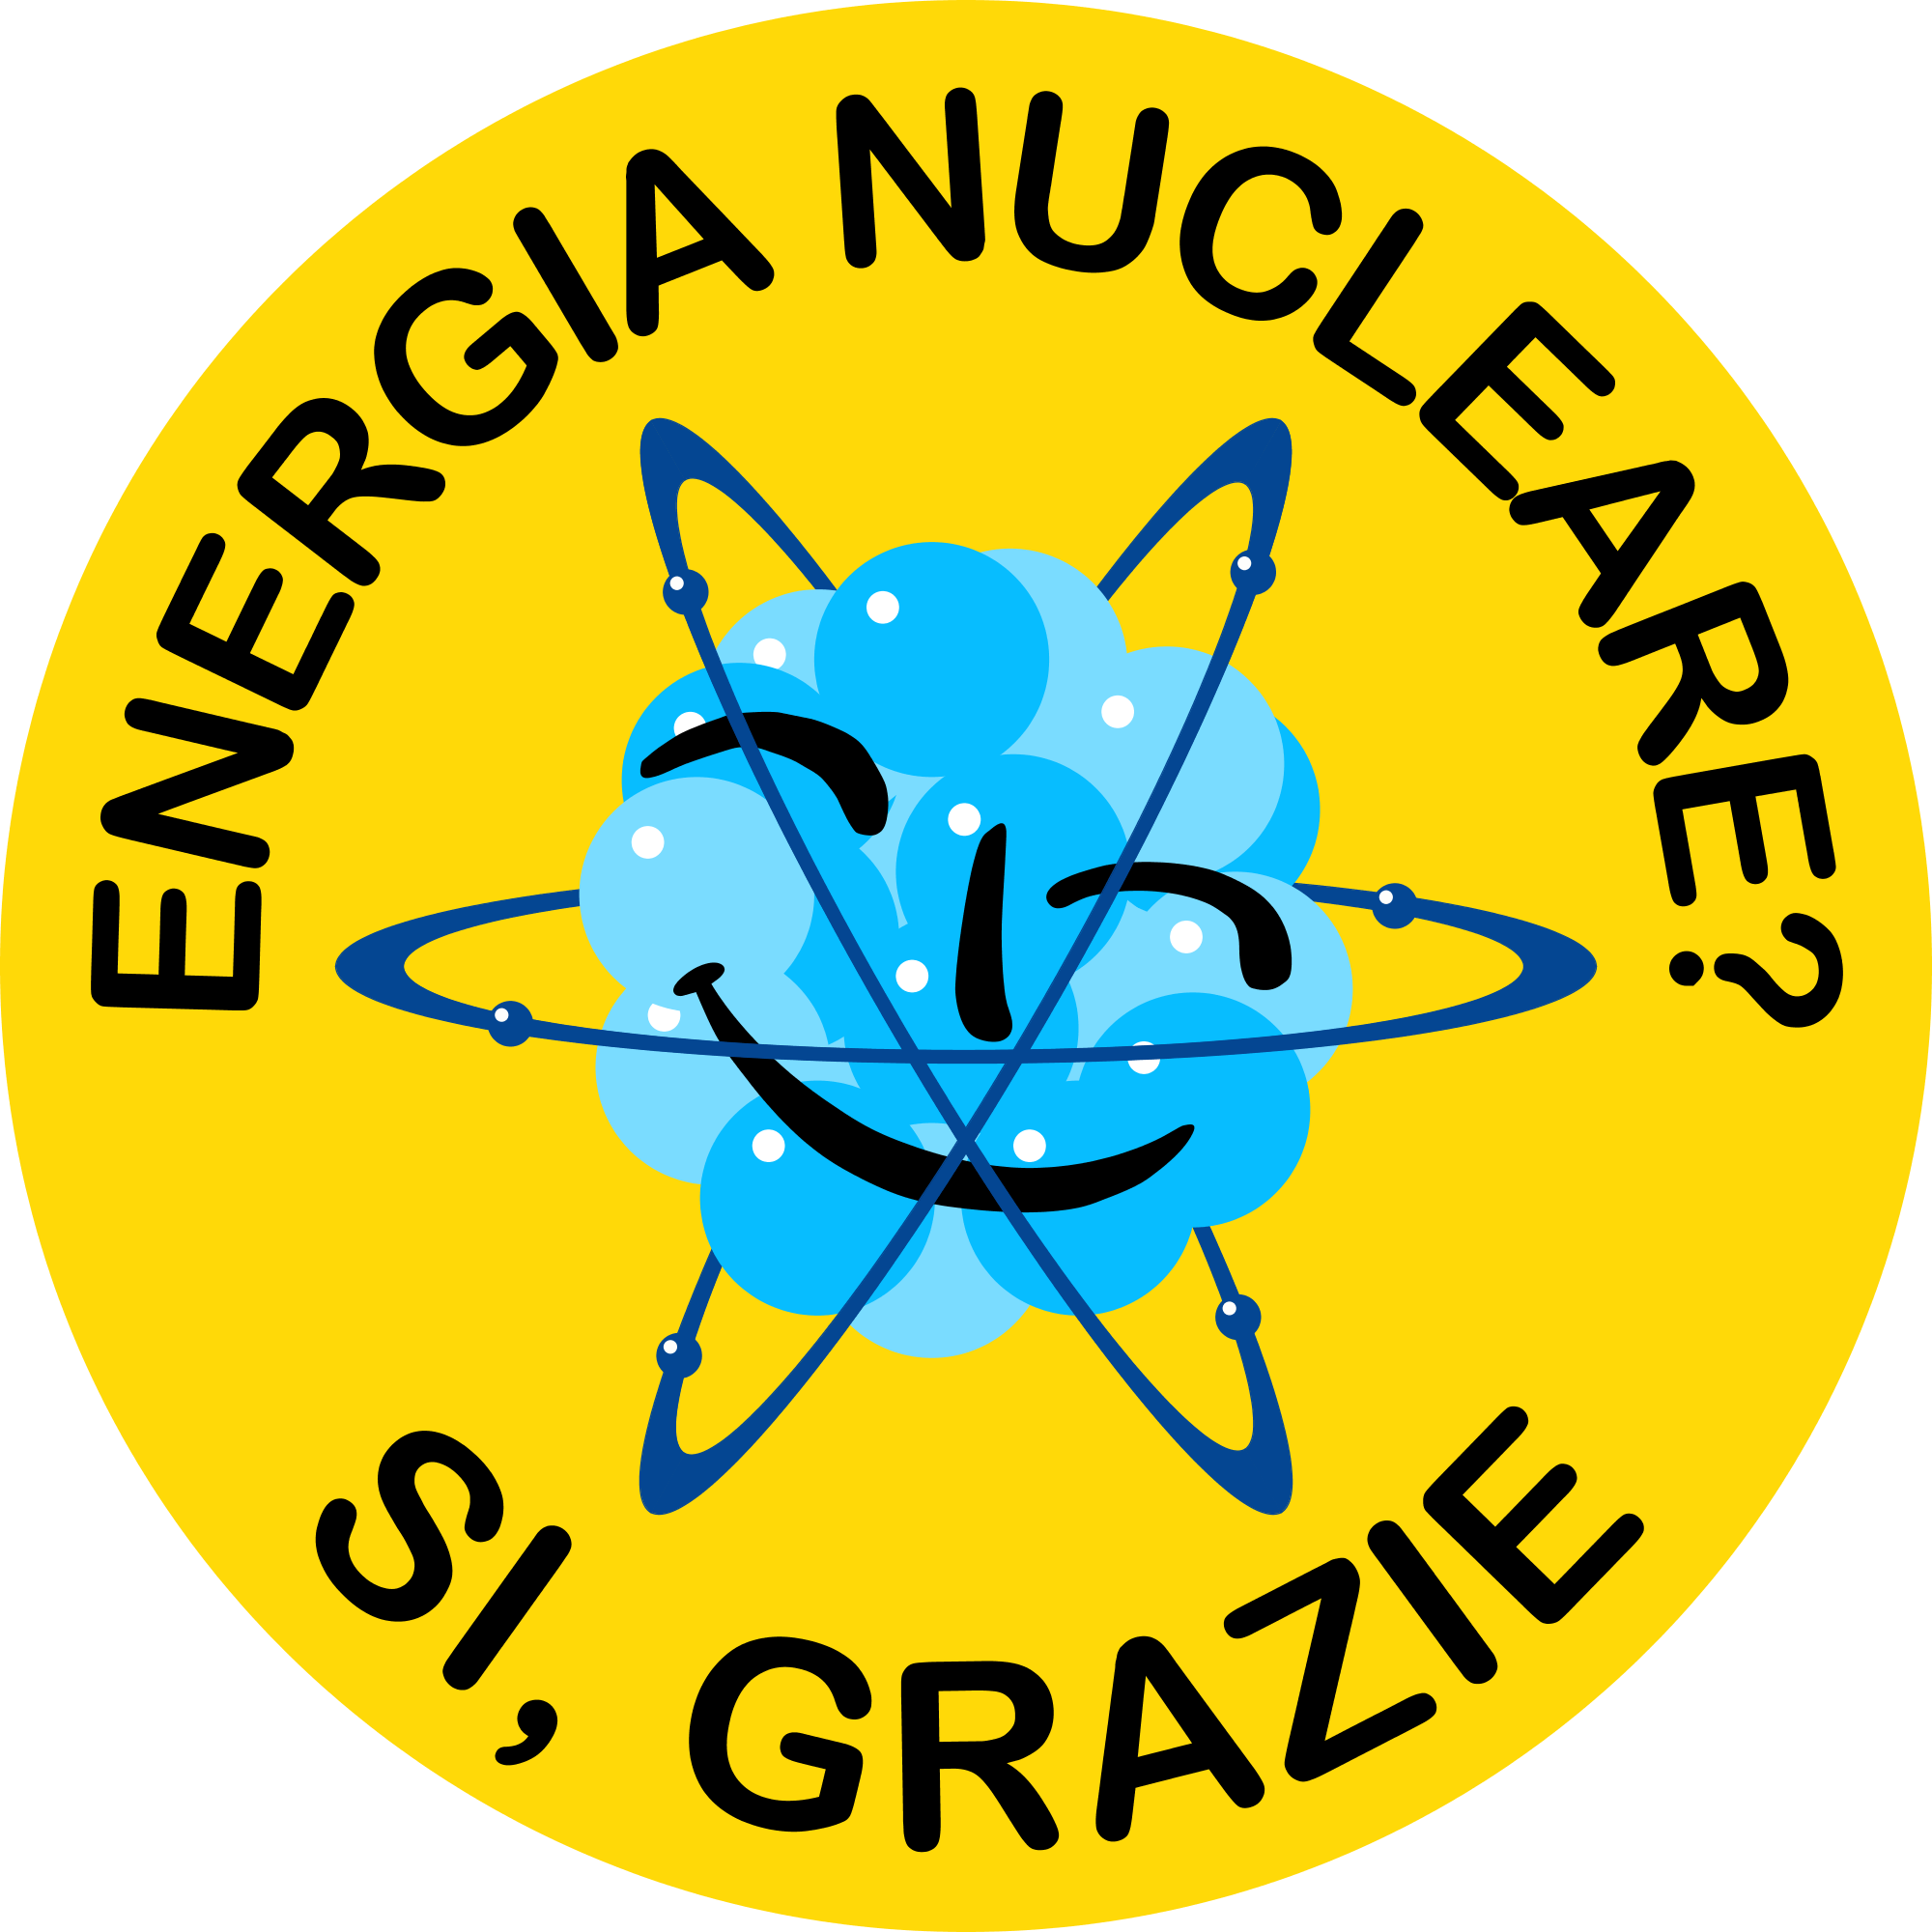 Nuclear Power? Yes Please - Downloads - Italian - Italiano Smiling